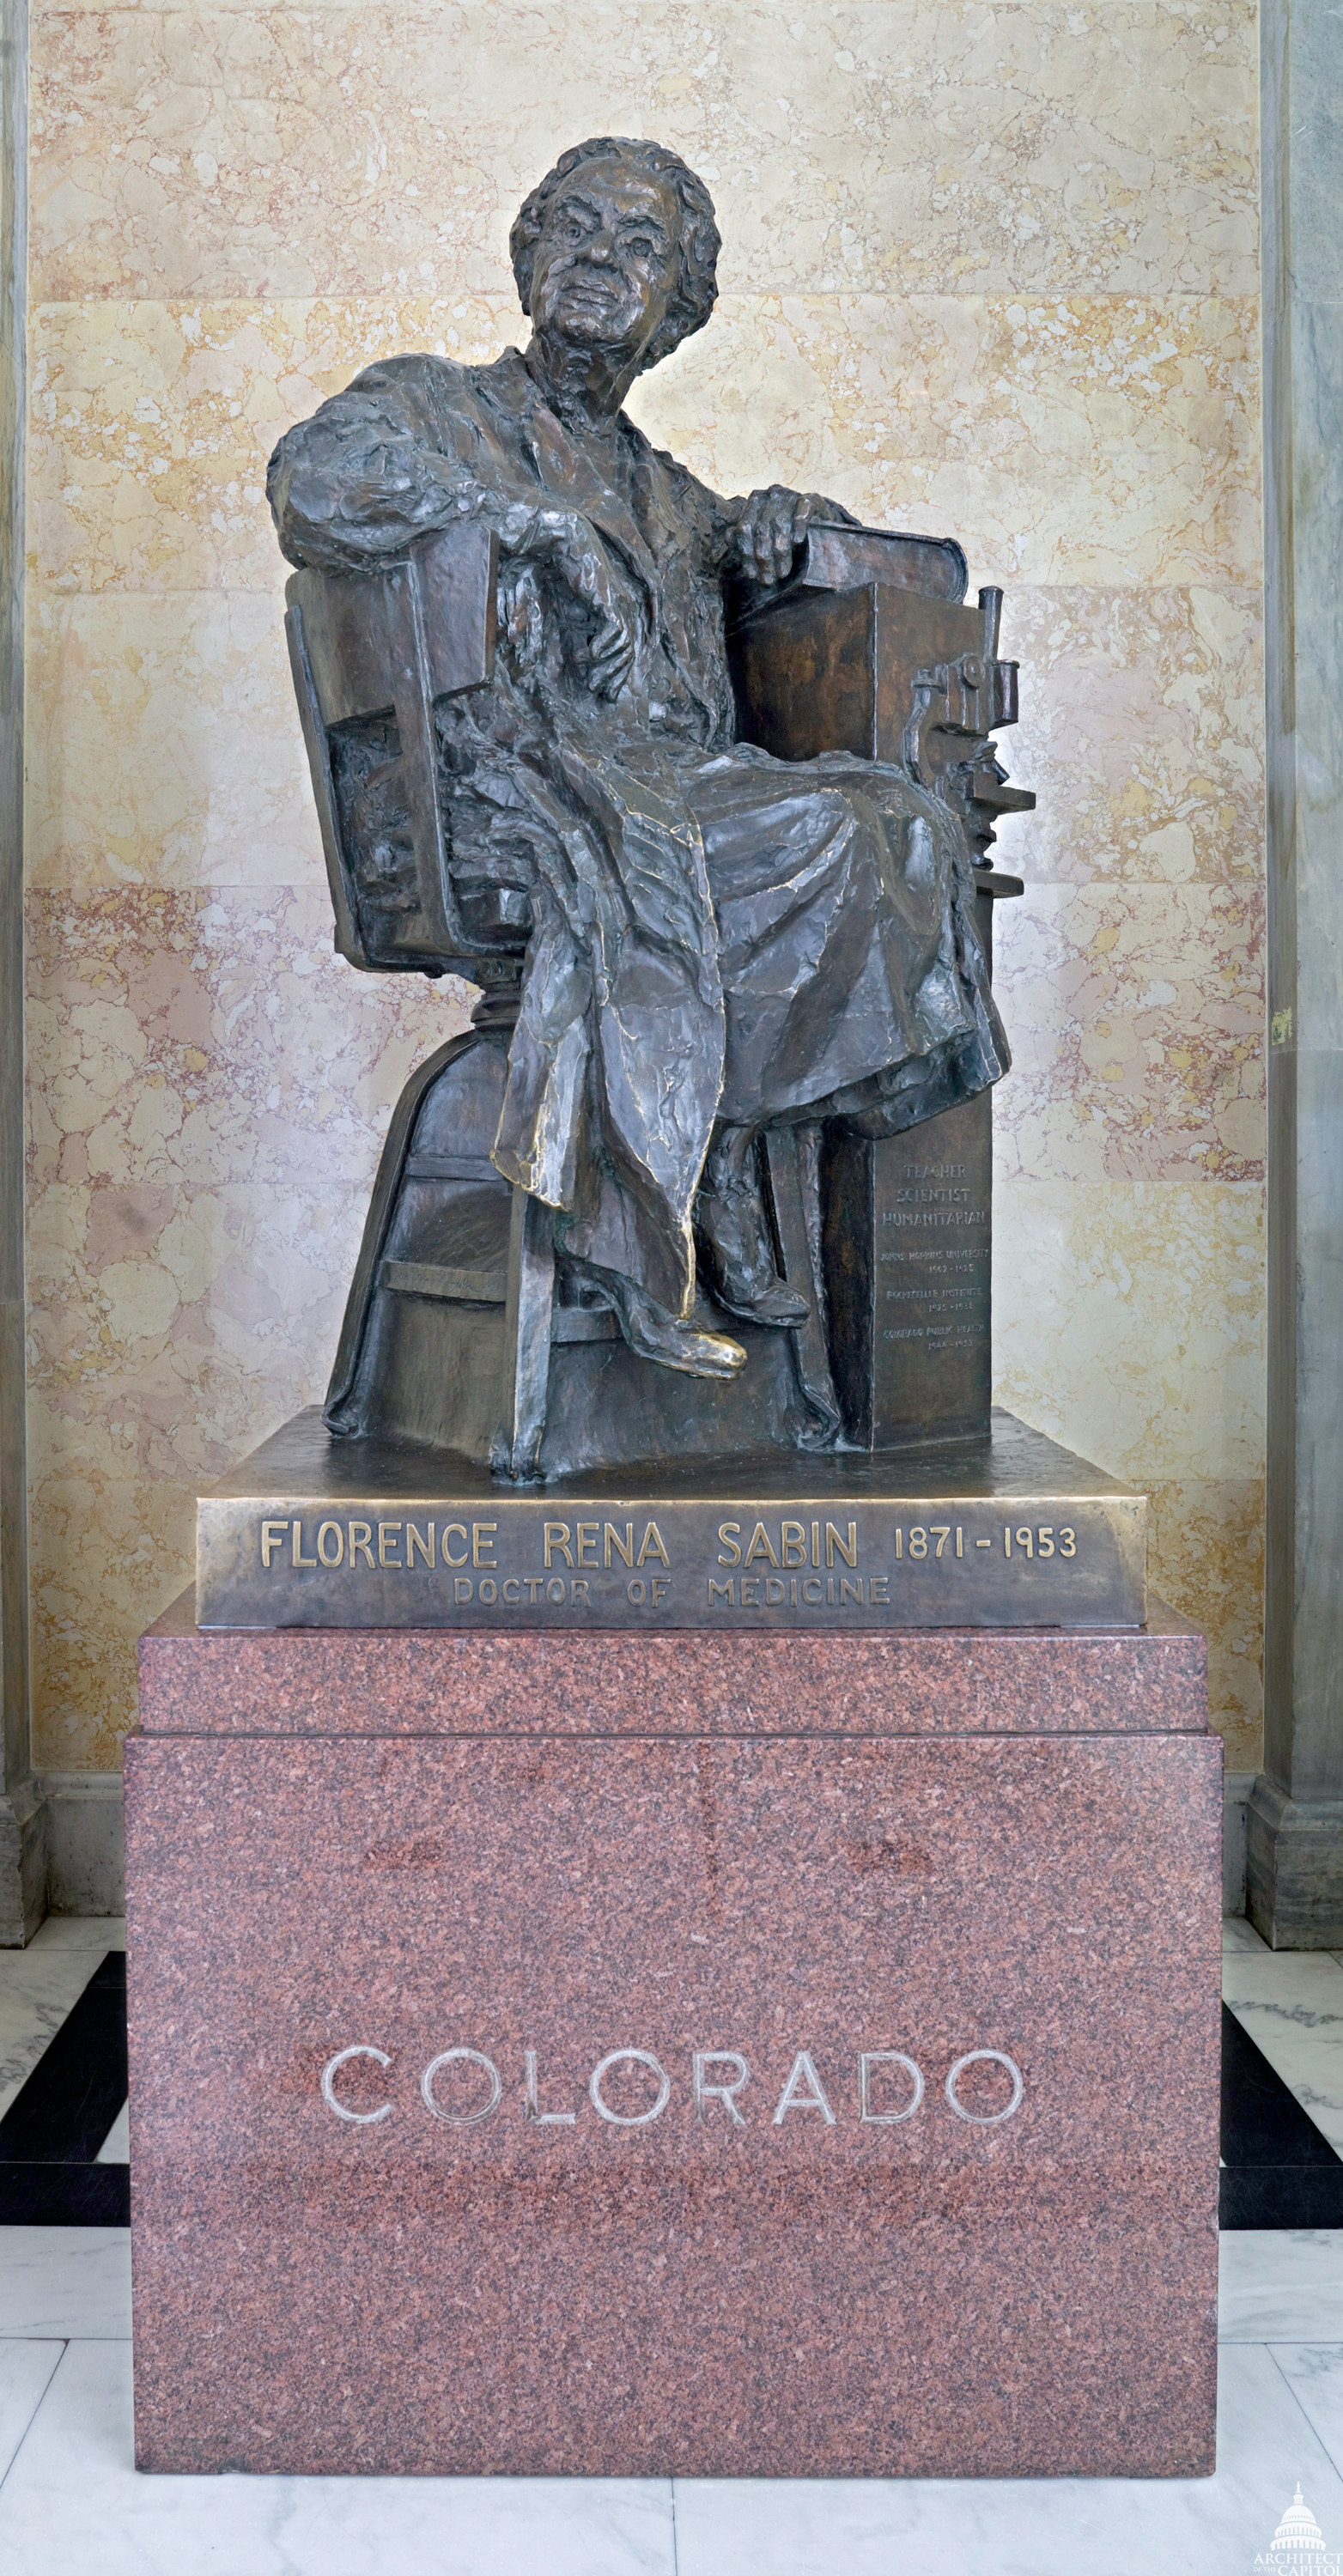 Statue of Florence Sabin, representing Colorado in the U.S. Capitol's National Statuary Hall Collection.